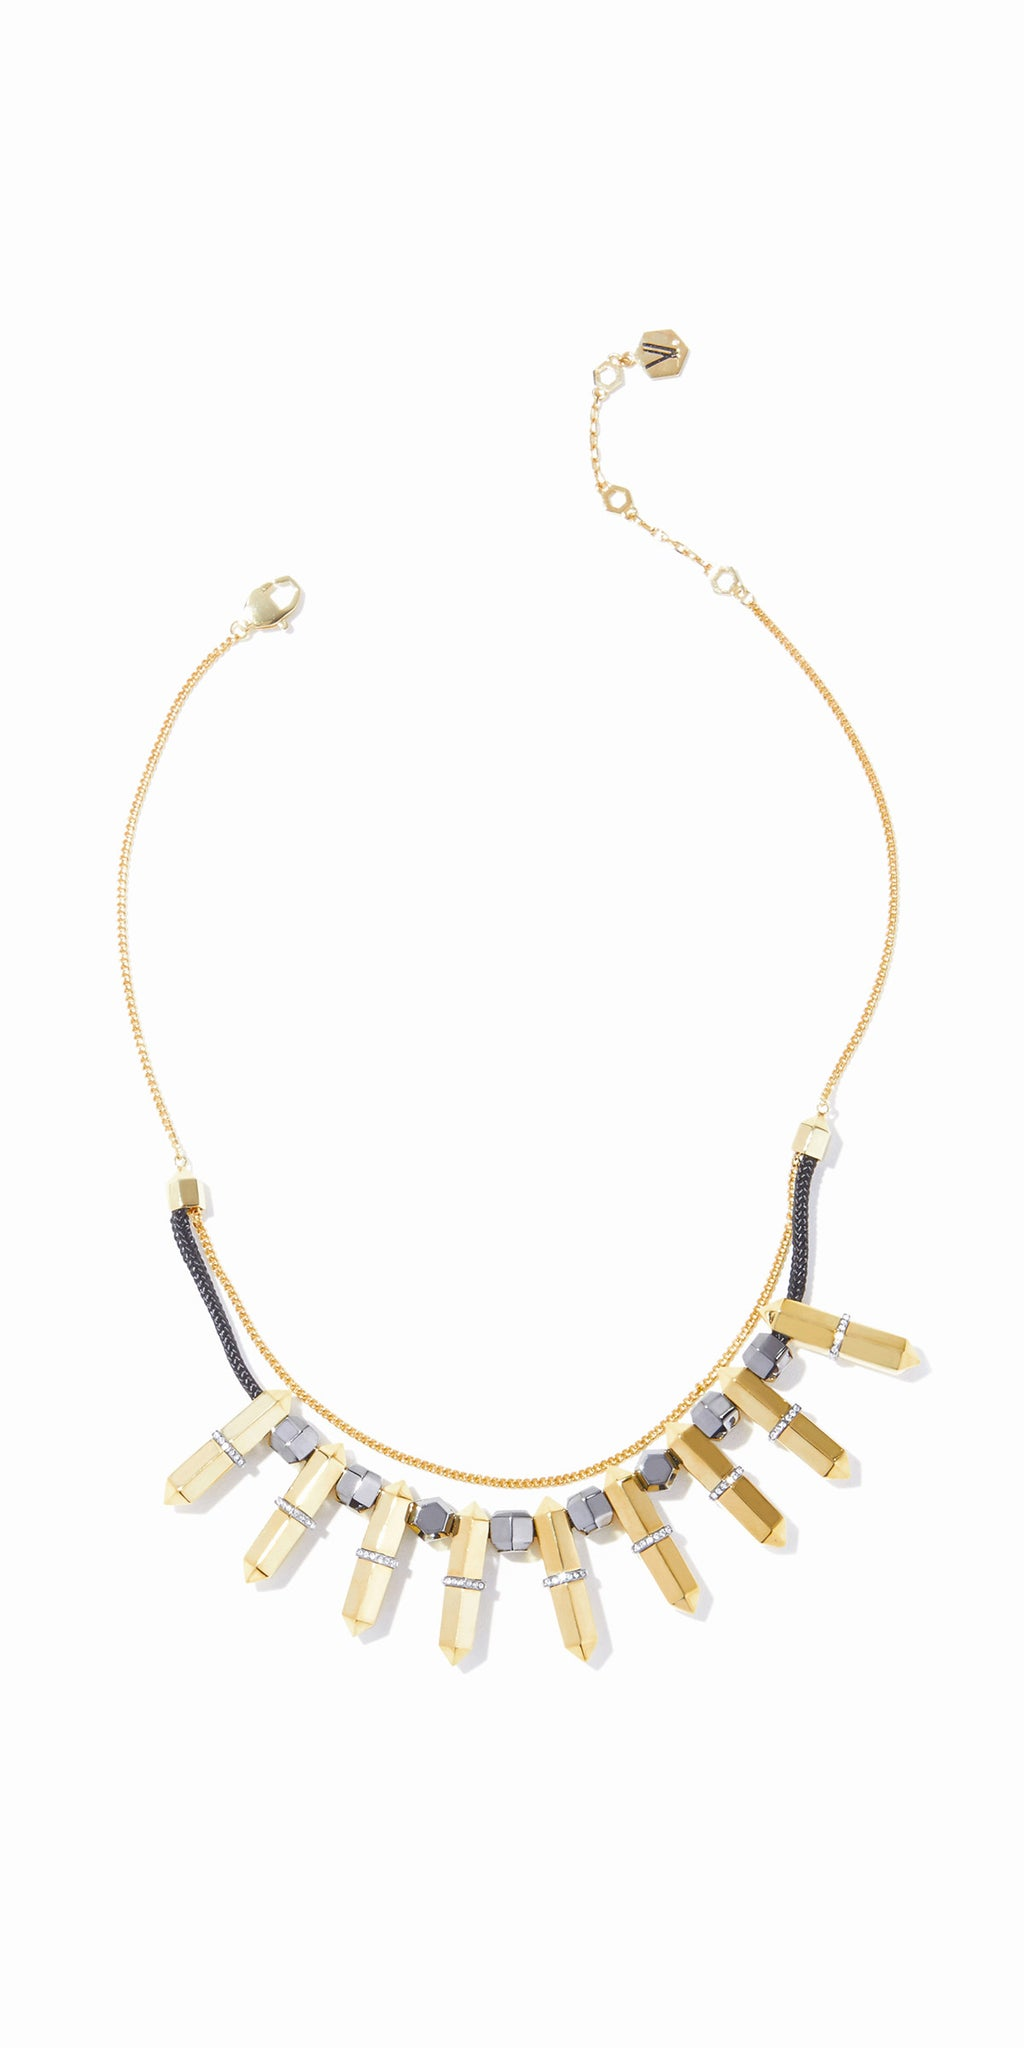 Colette Statement Necklace - 2 Tone Gold and Hematite